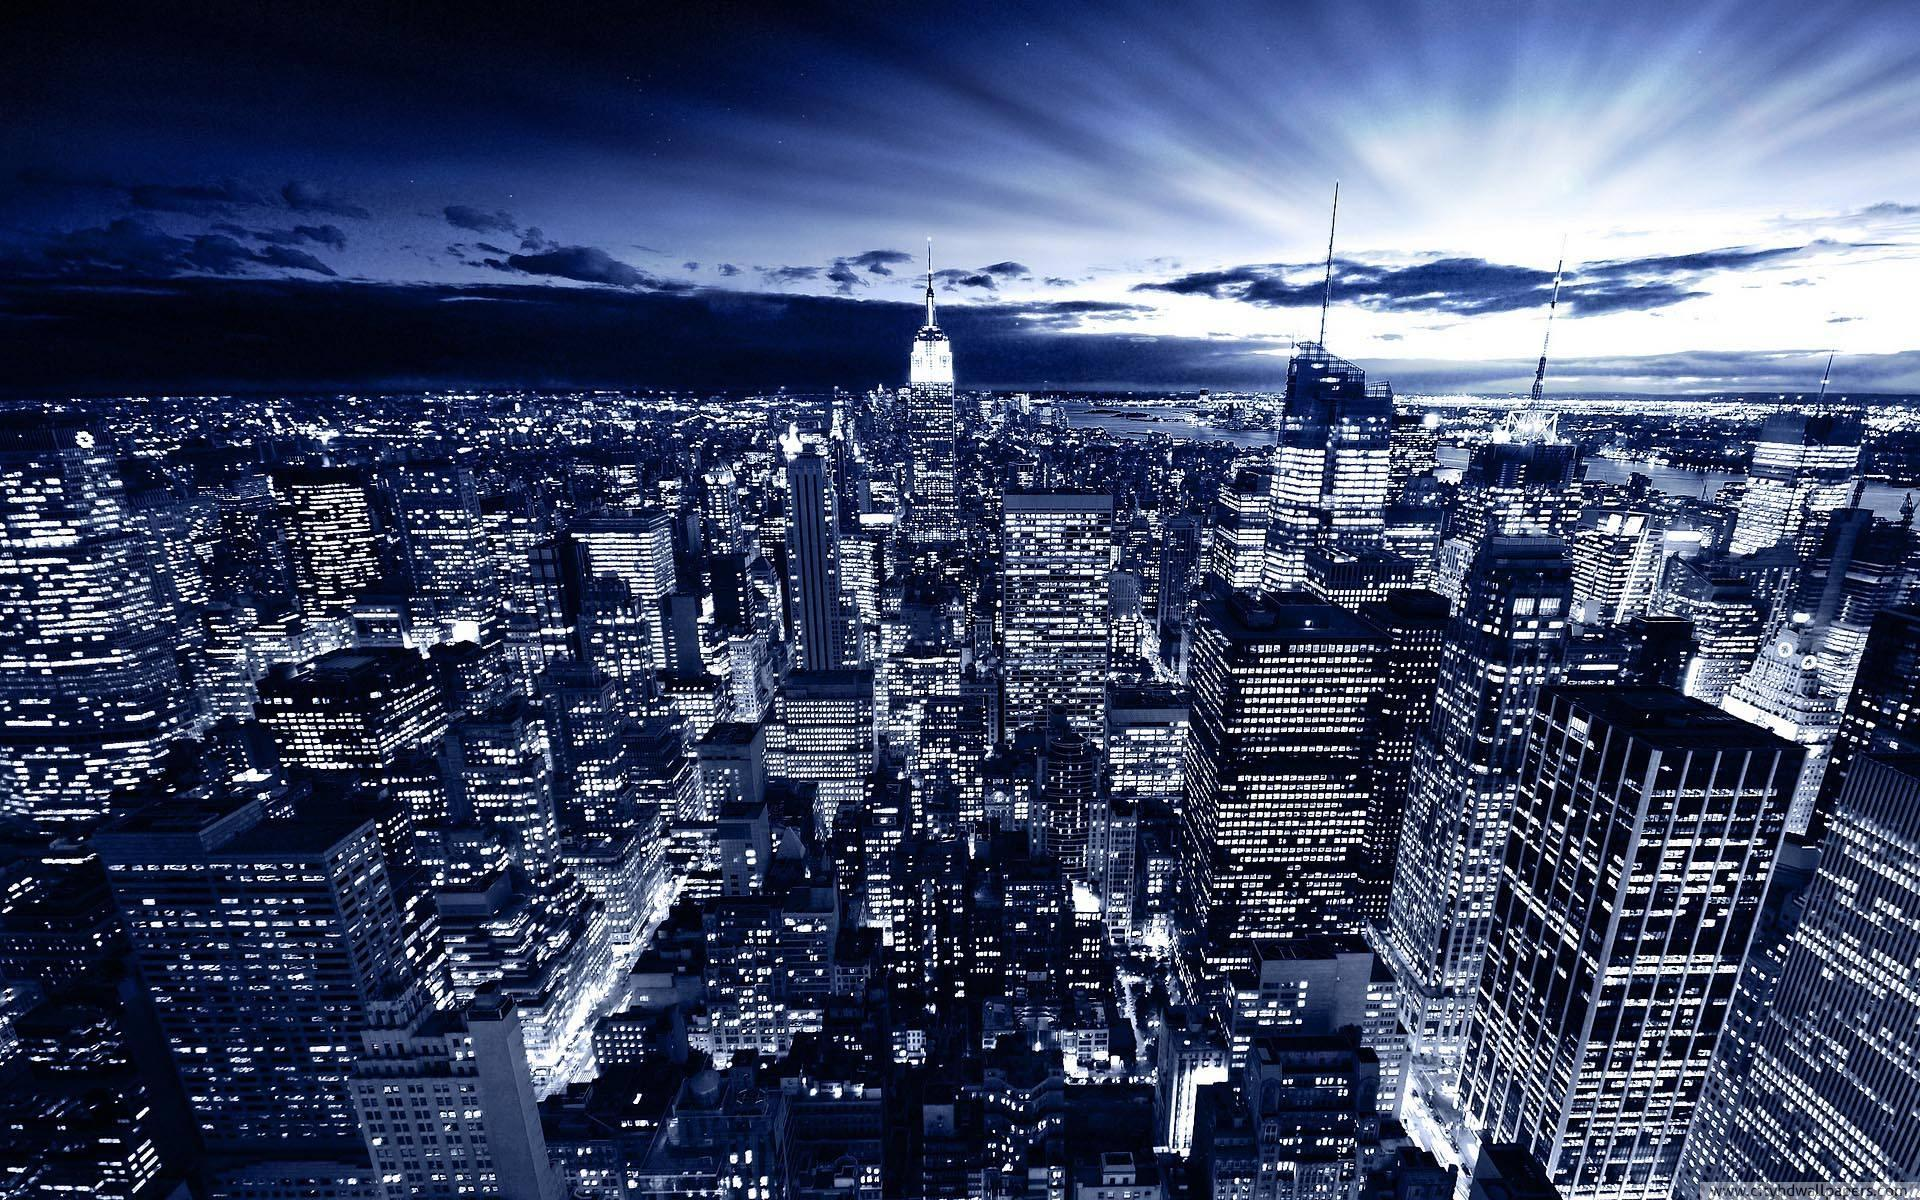 night light of new york in new york usa city hd wallpaper more about 1920x1200